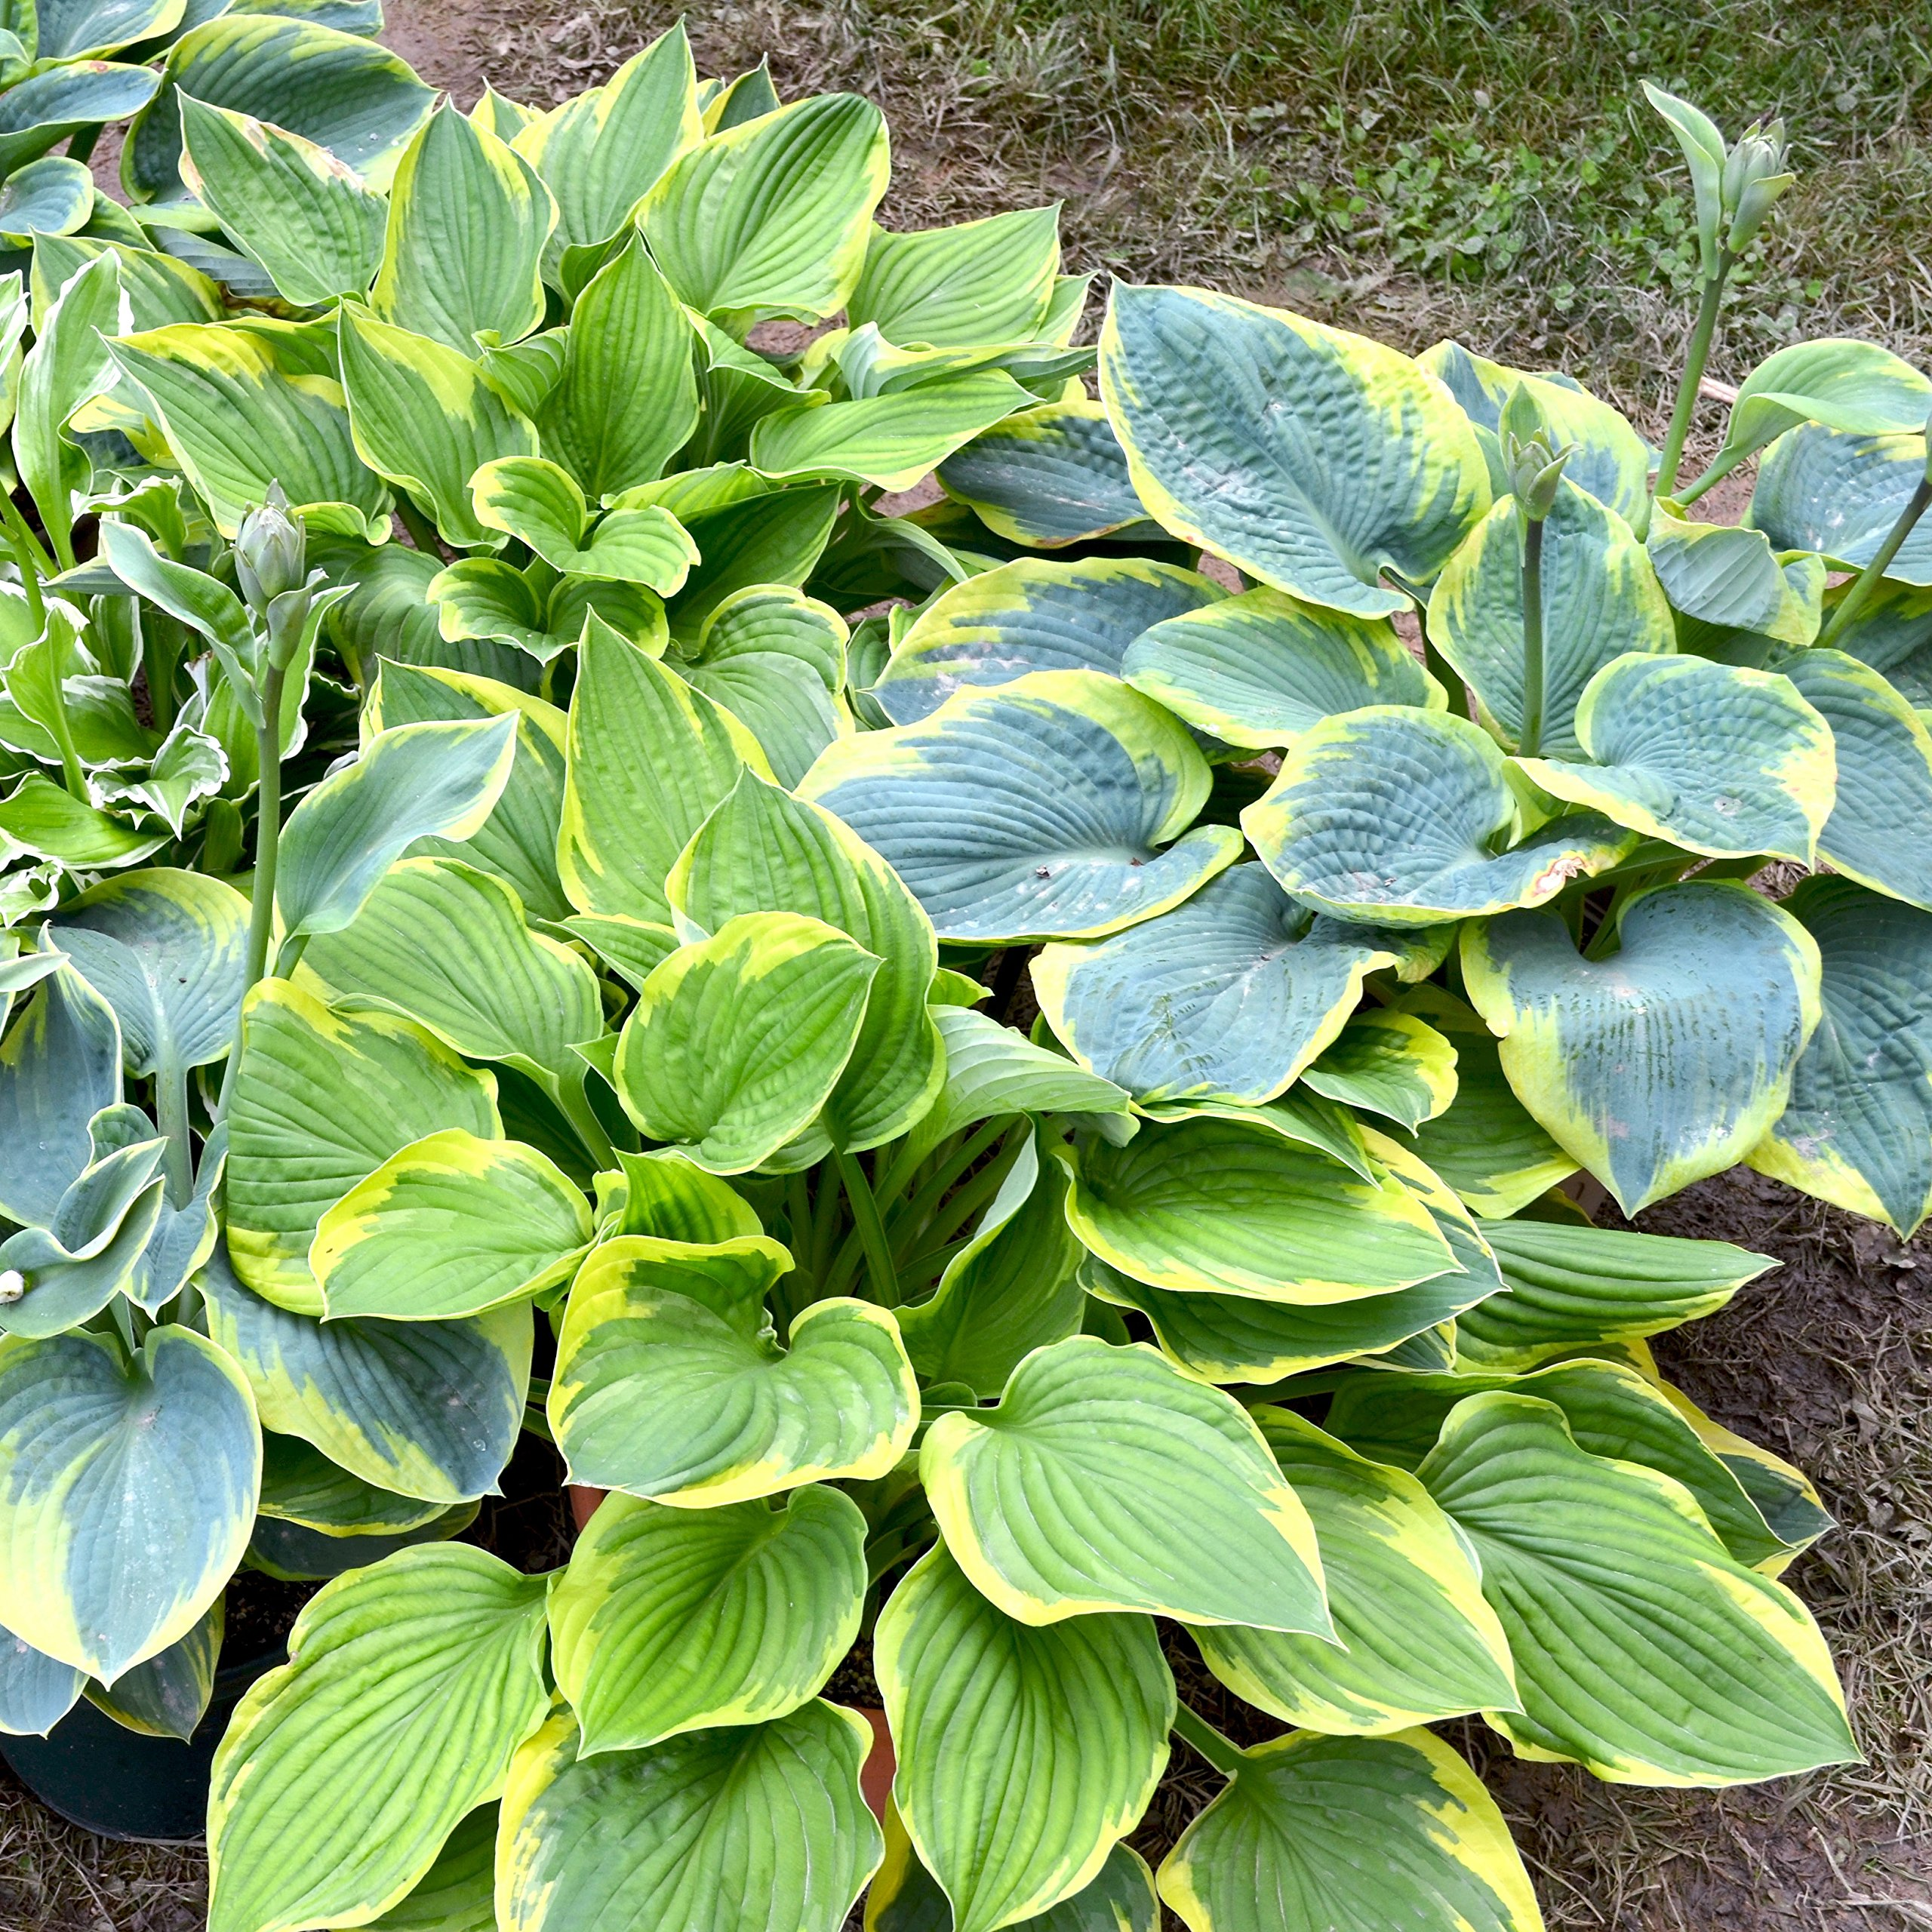 Hosta Bumper Crop Mix - 10 Bare Root Hostas - Fabulous Color for Shady Gardens | Ships from Easy to Grow by Easy to Grow